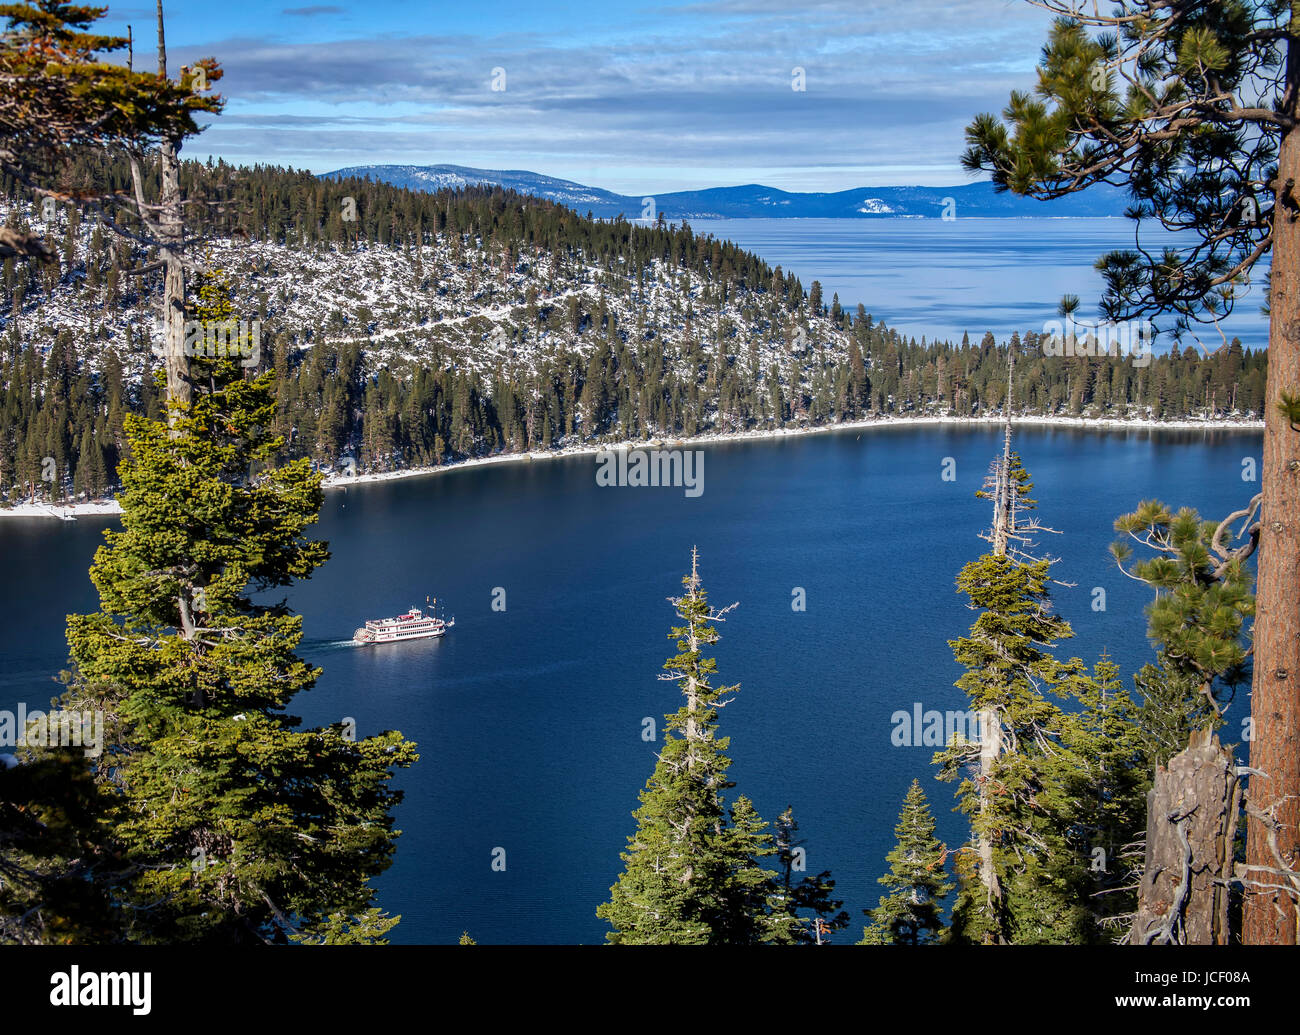 An image of the Tahoe Queen paddle wheel cruise ship on a winter excursion in Lake Tahoe's Emerald Bay. Stock Photo